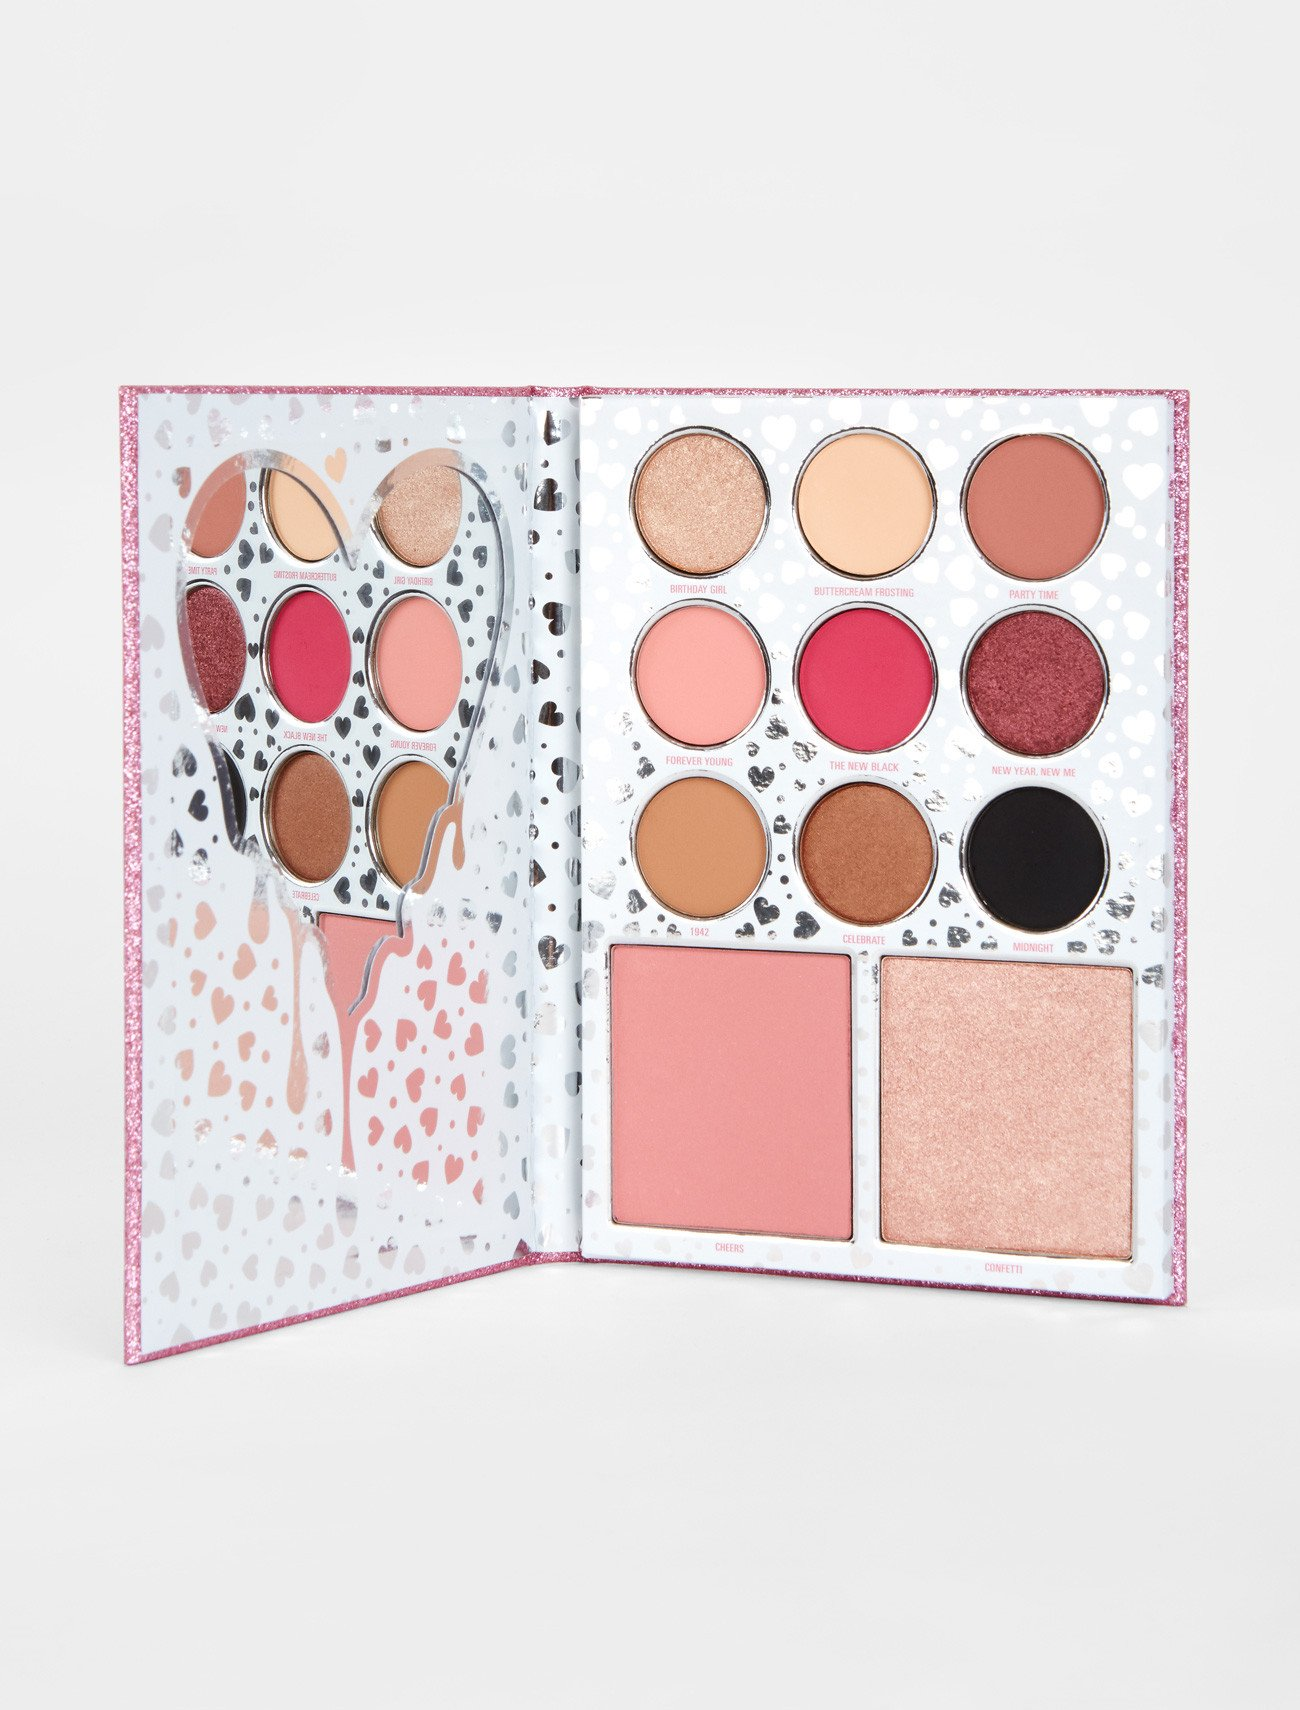 Kylie Cosmetics The Birthday Collection | I Want It All Palette